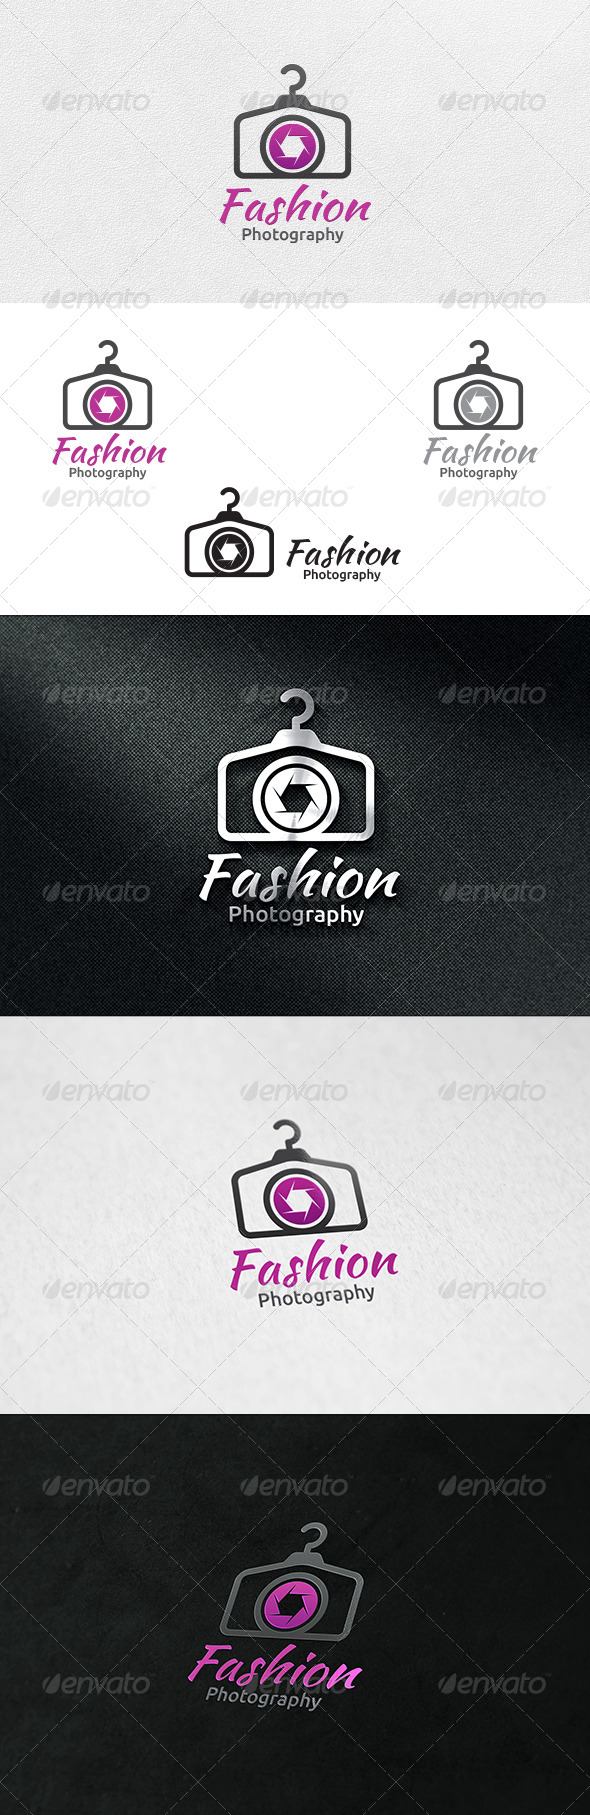 Fashion Photography - Logo Template - Symbols Logo Templates